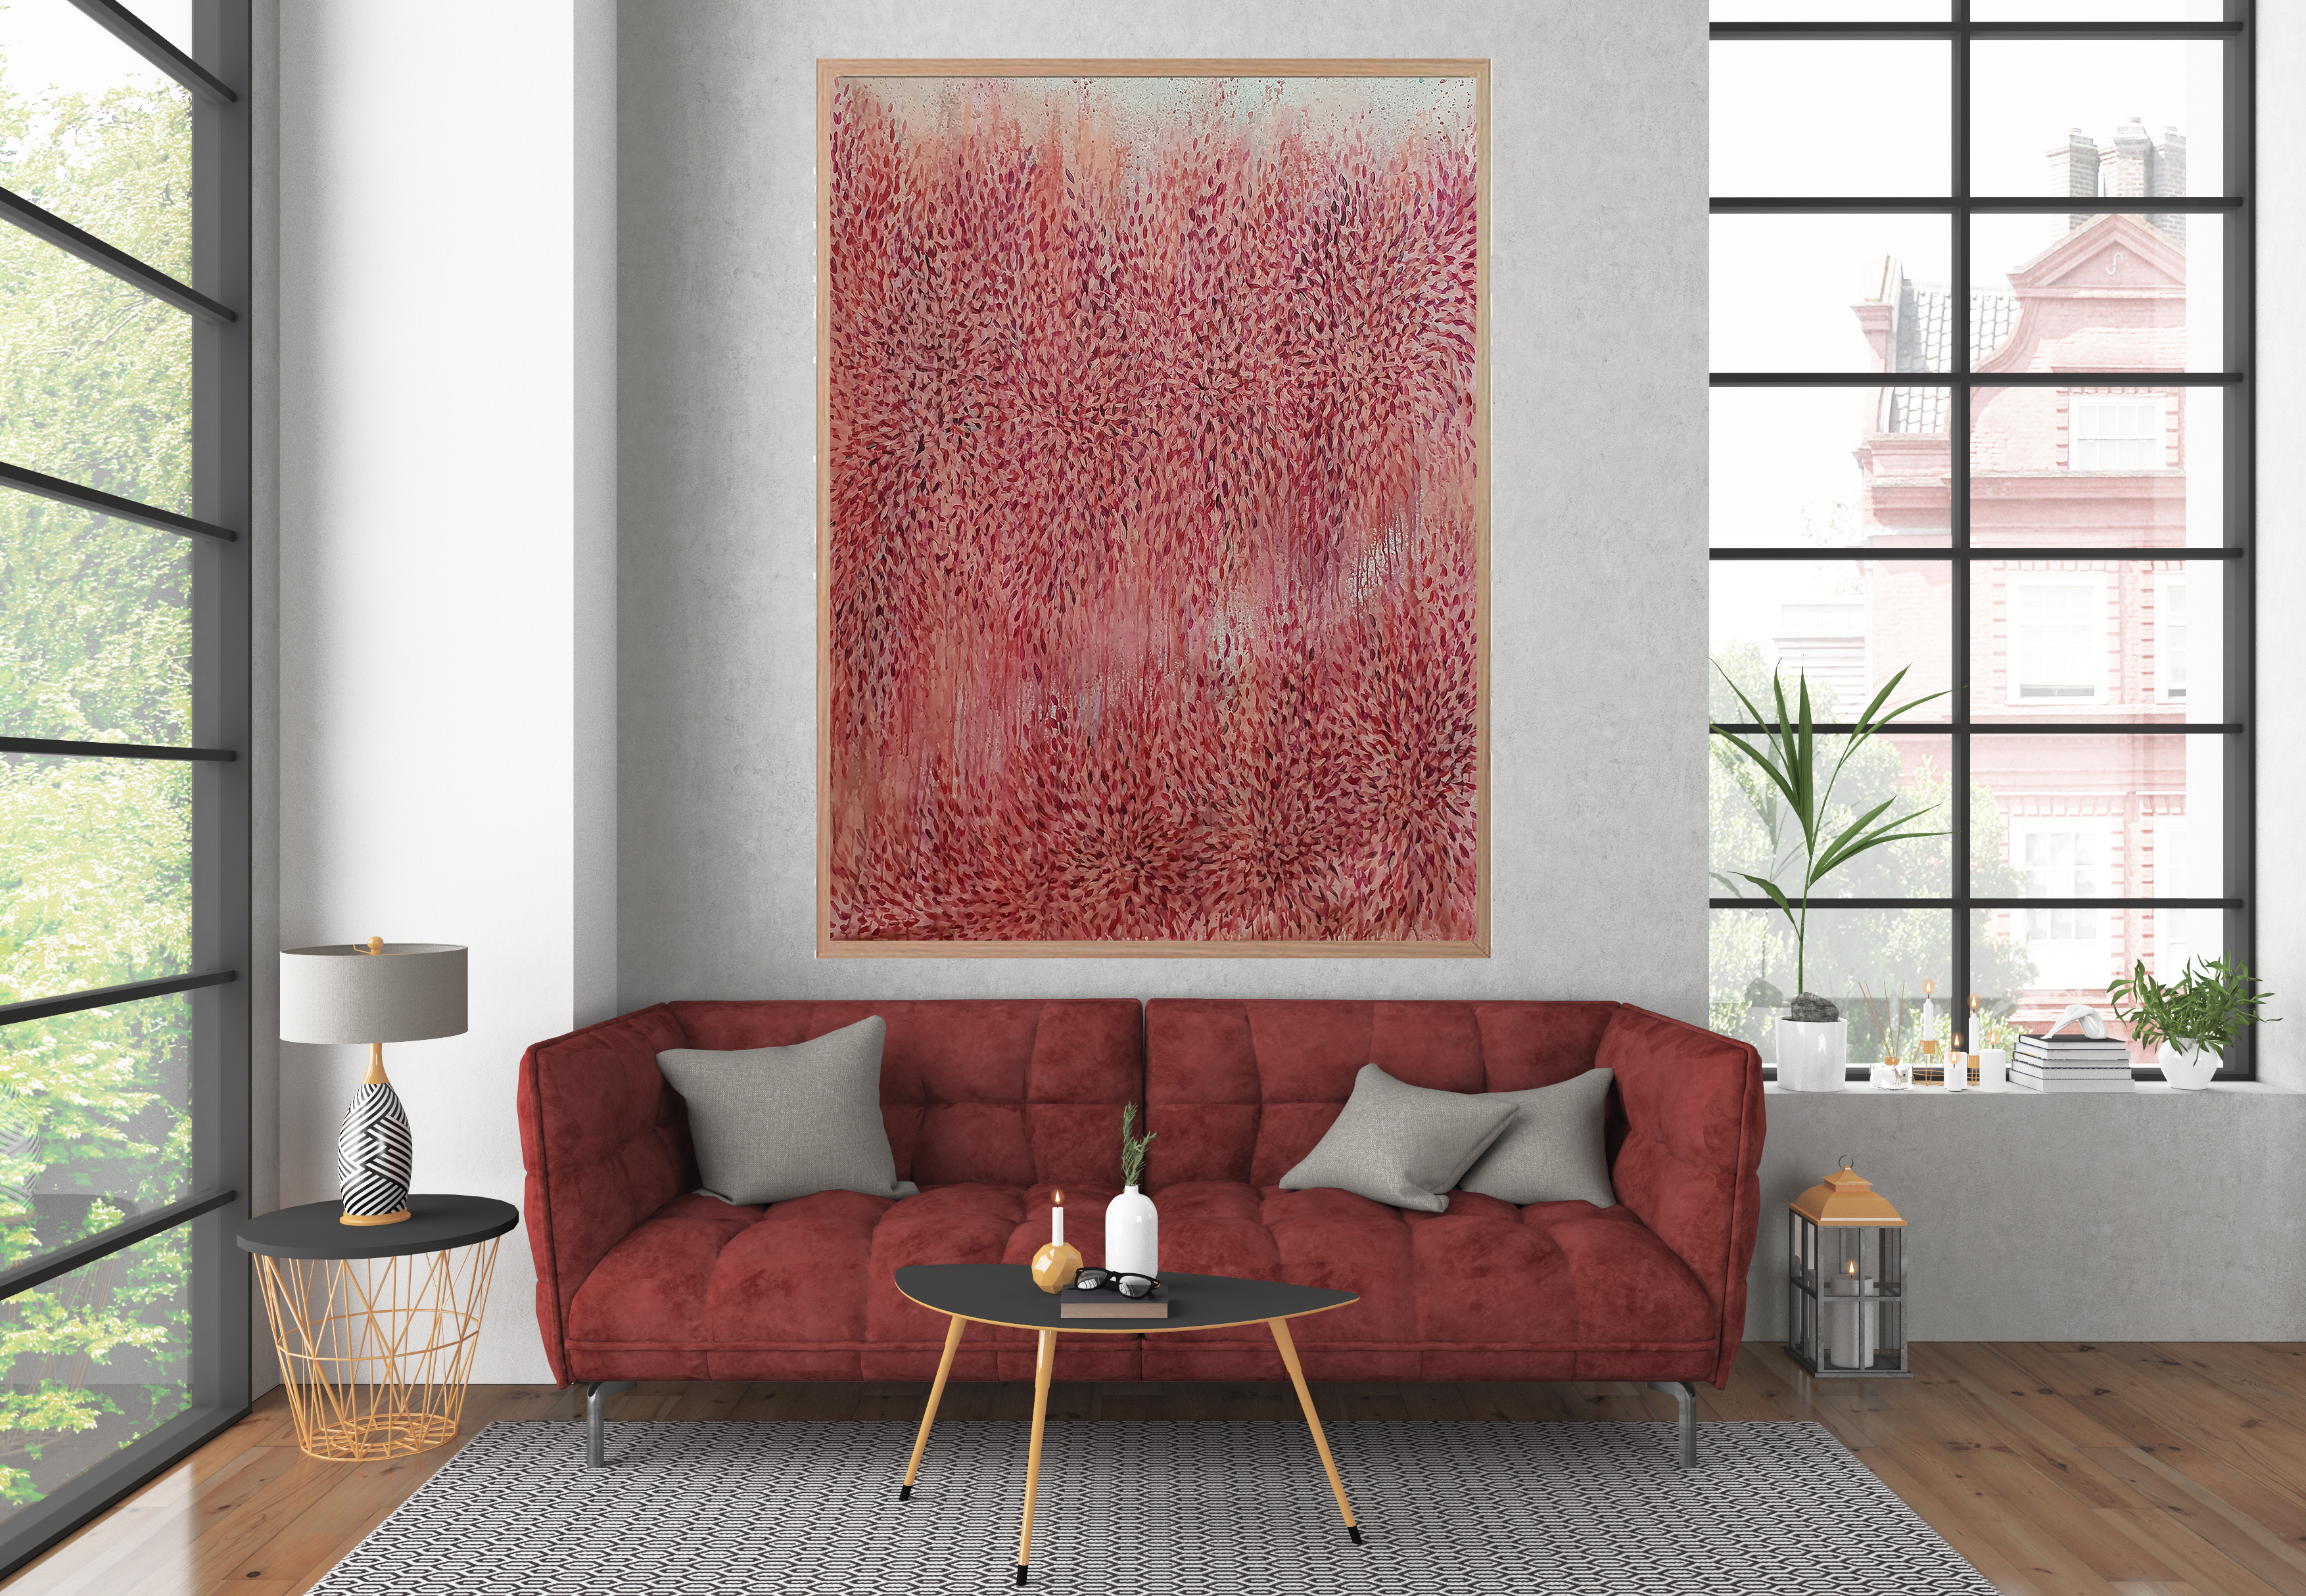 Artist Leni Kae Illawarra Flame Tree, Abstract Art Living Lounge Room Interior Design Statement Art